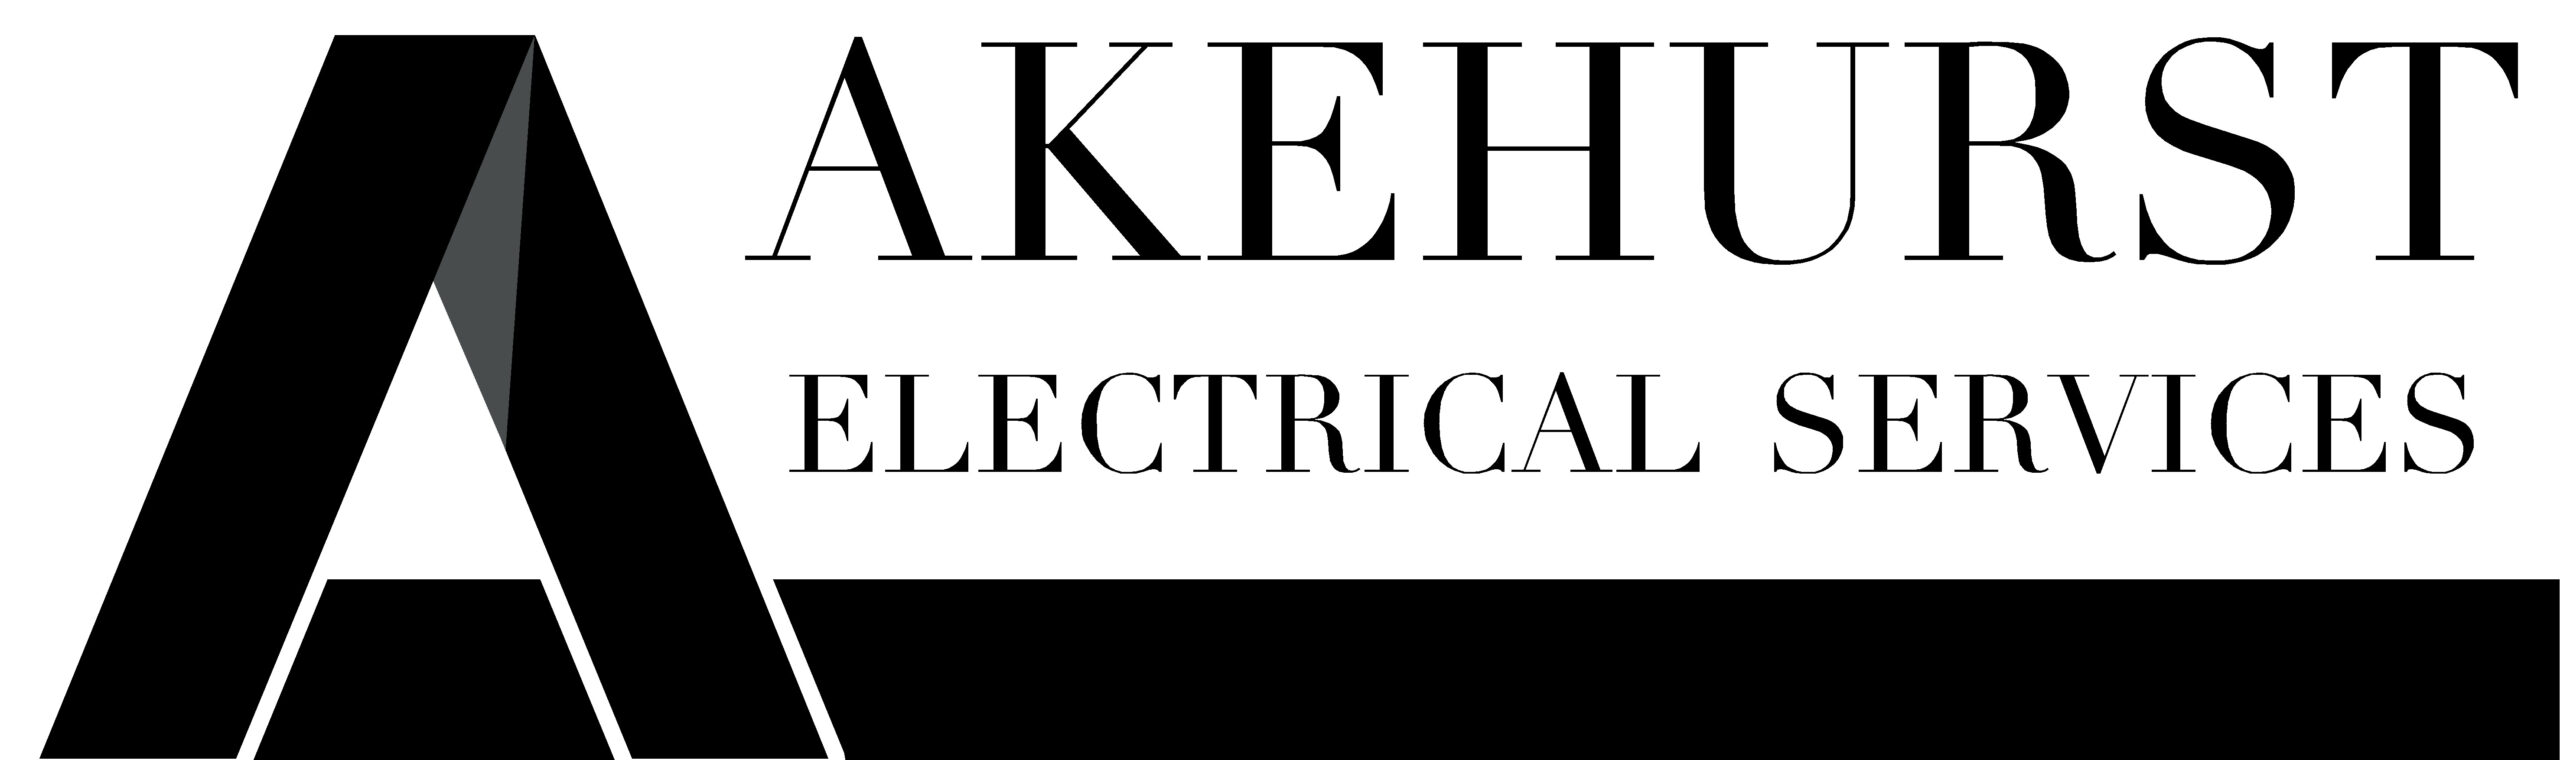 Akehurst Electrical